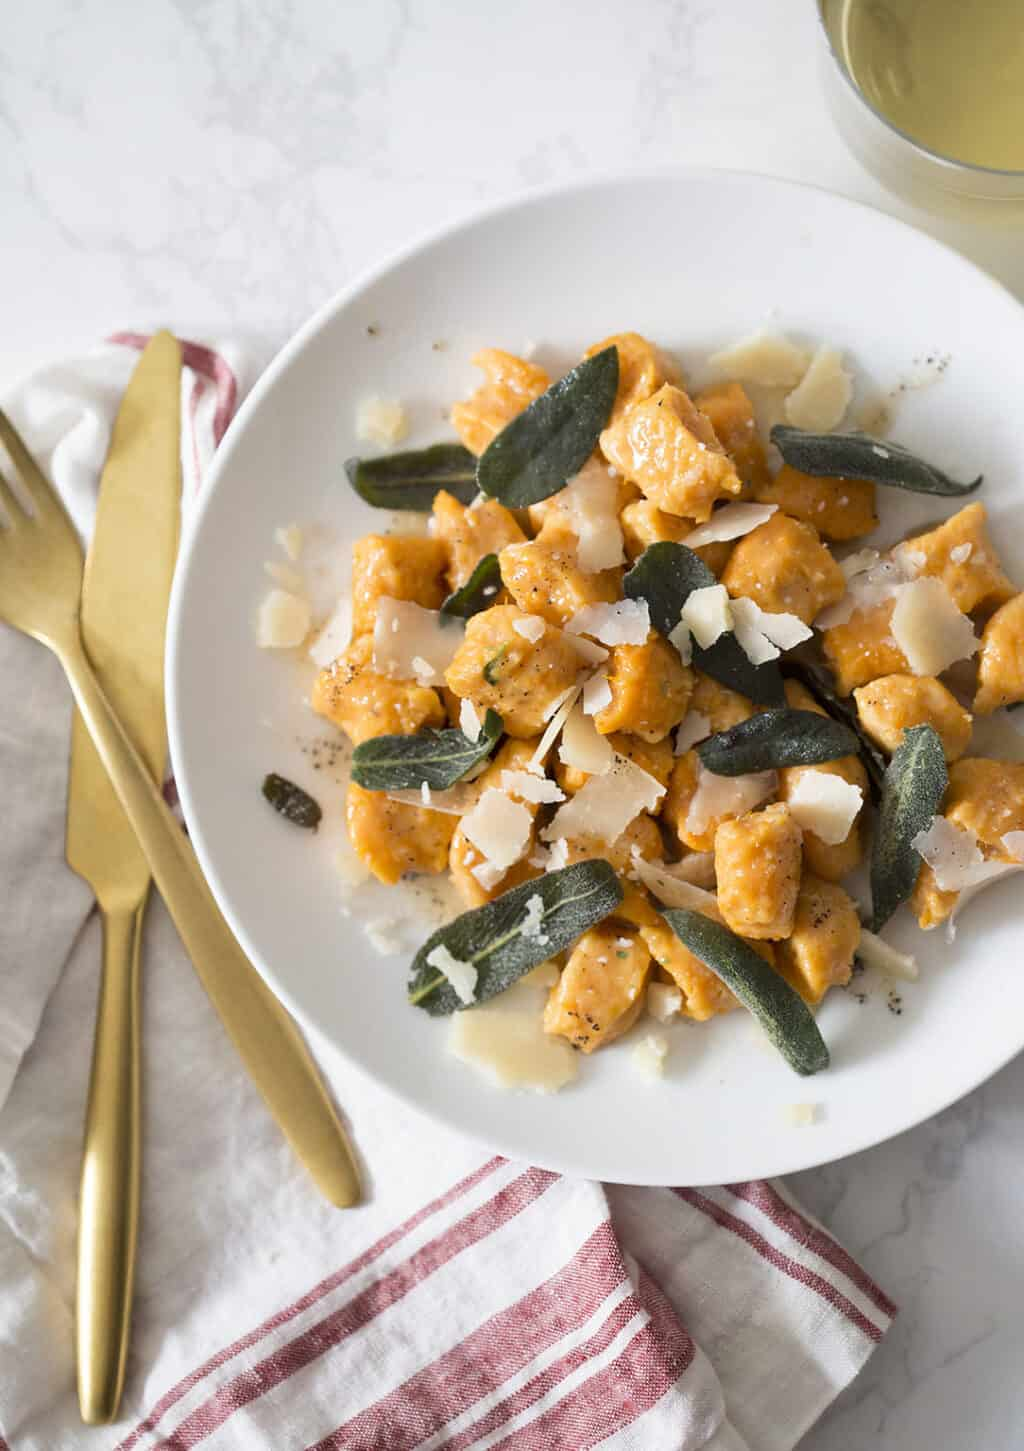 A photo of Sweet Potato Gnocchi in a bowl with sage leaves on top.